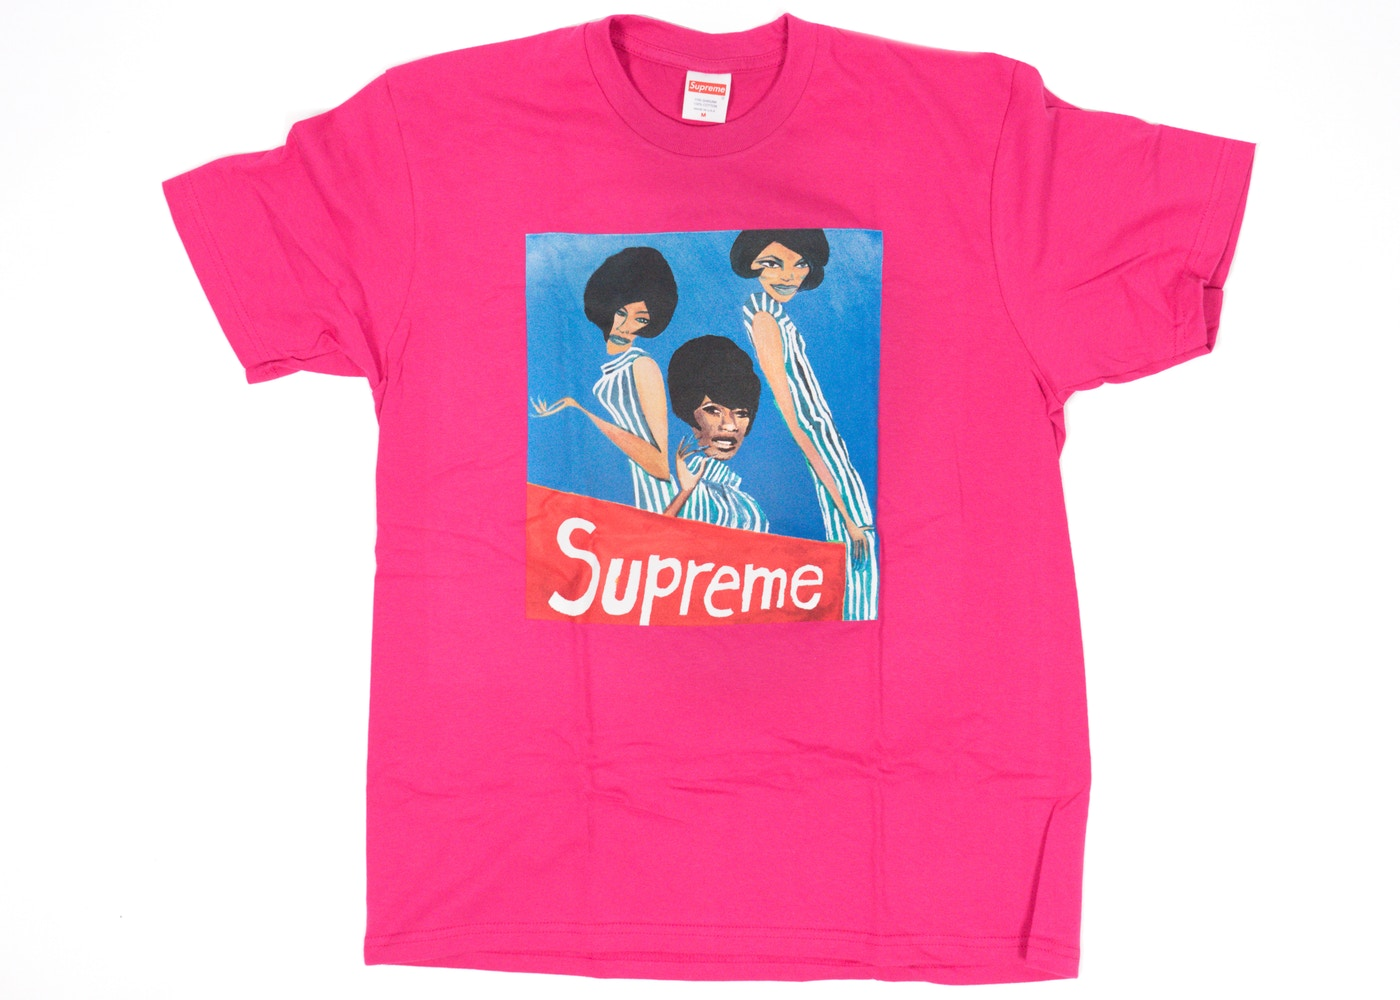 74221f63b495 Supreme Group Tee Dark Pink - FW18